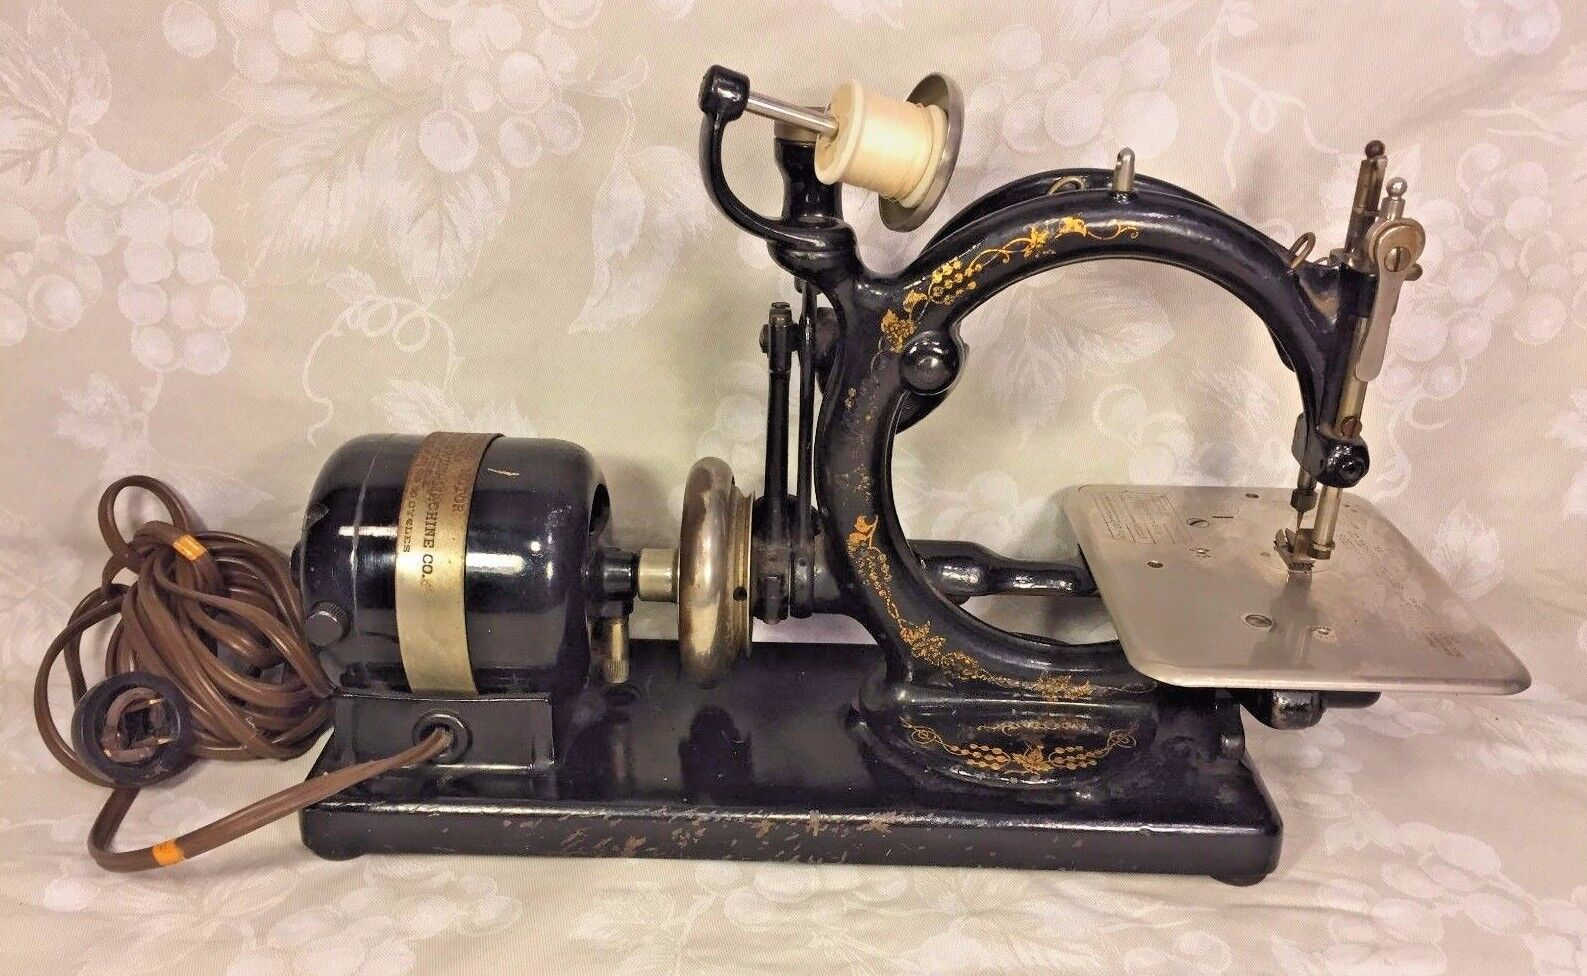 Vintage Willcox and Gibbs Sewing Machine w/ Foot Floor Control & Carrying Case